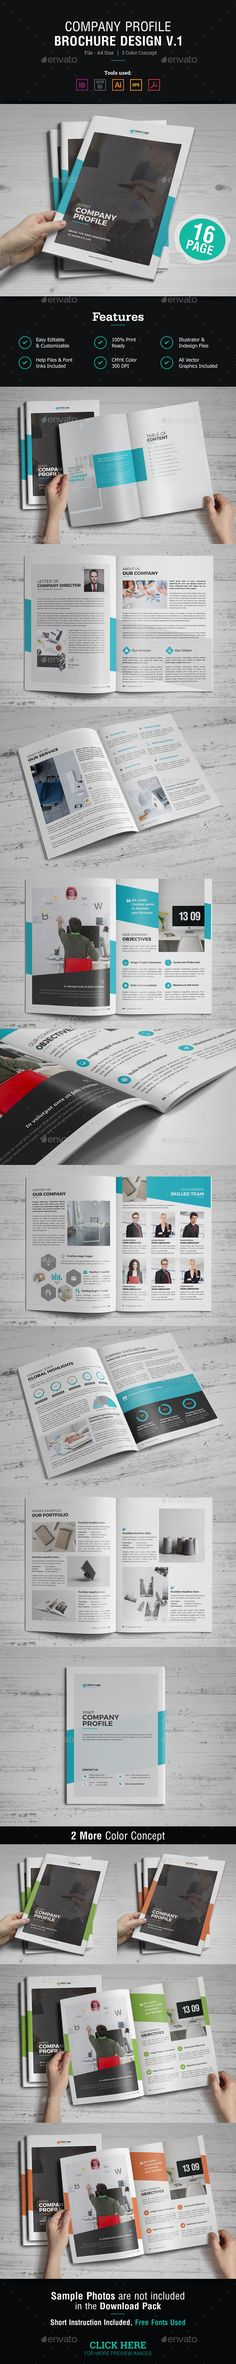 Company Profile Company profile, Brochure template and Brochures - company profile sample download